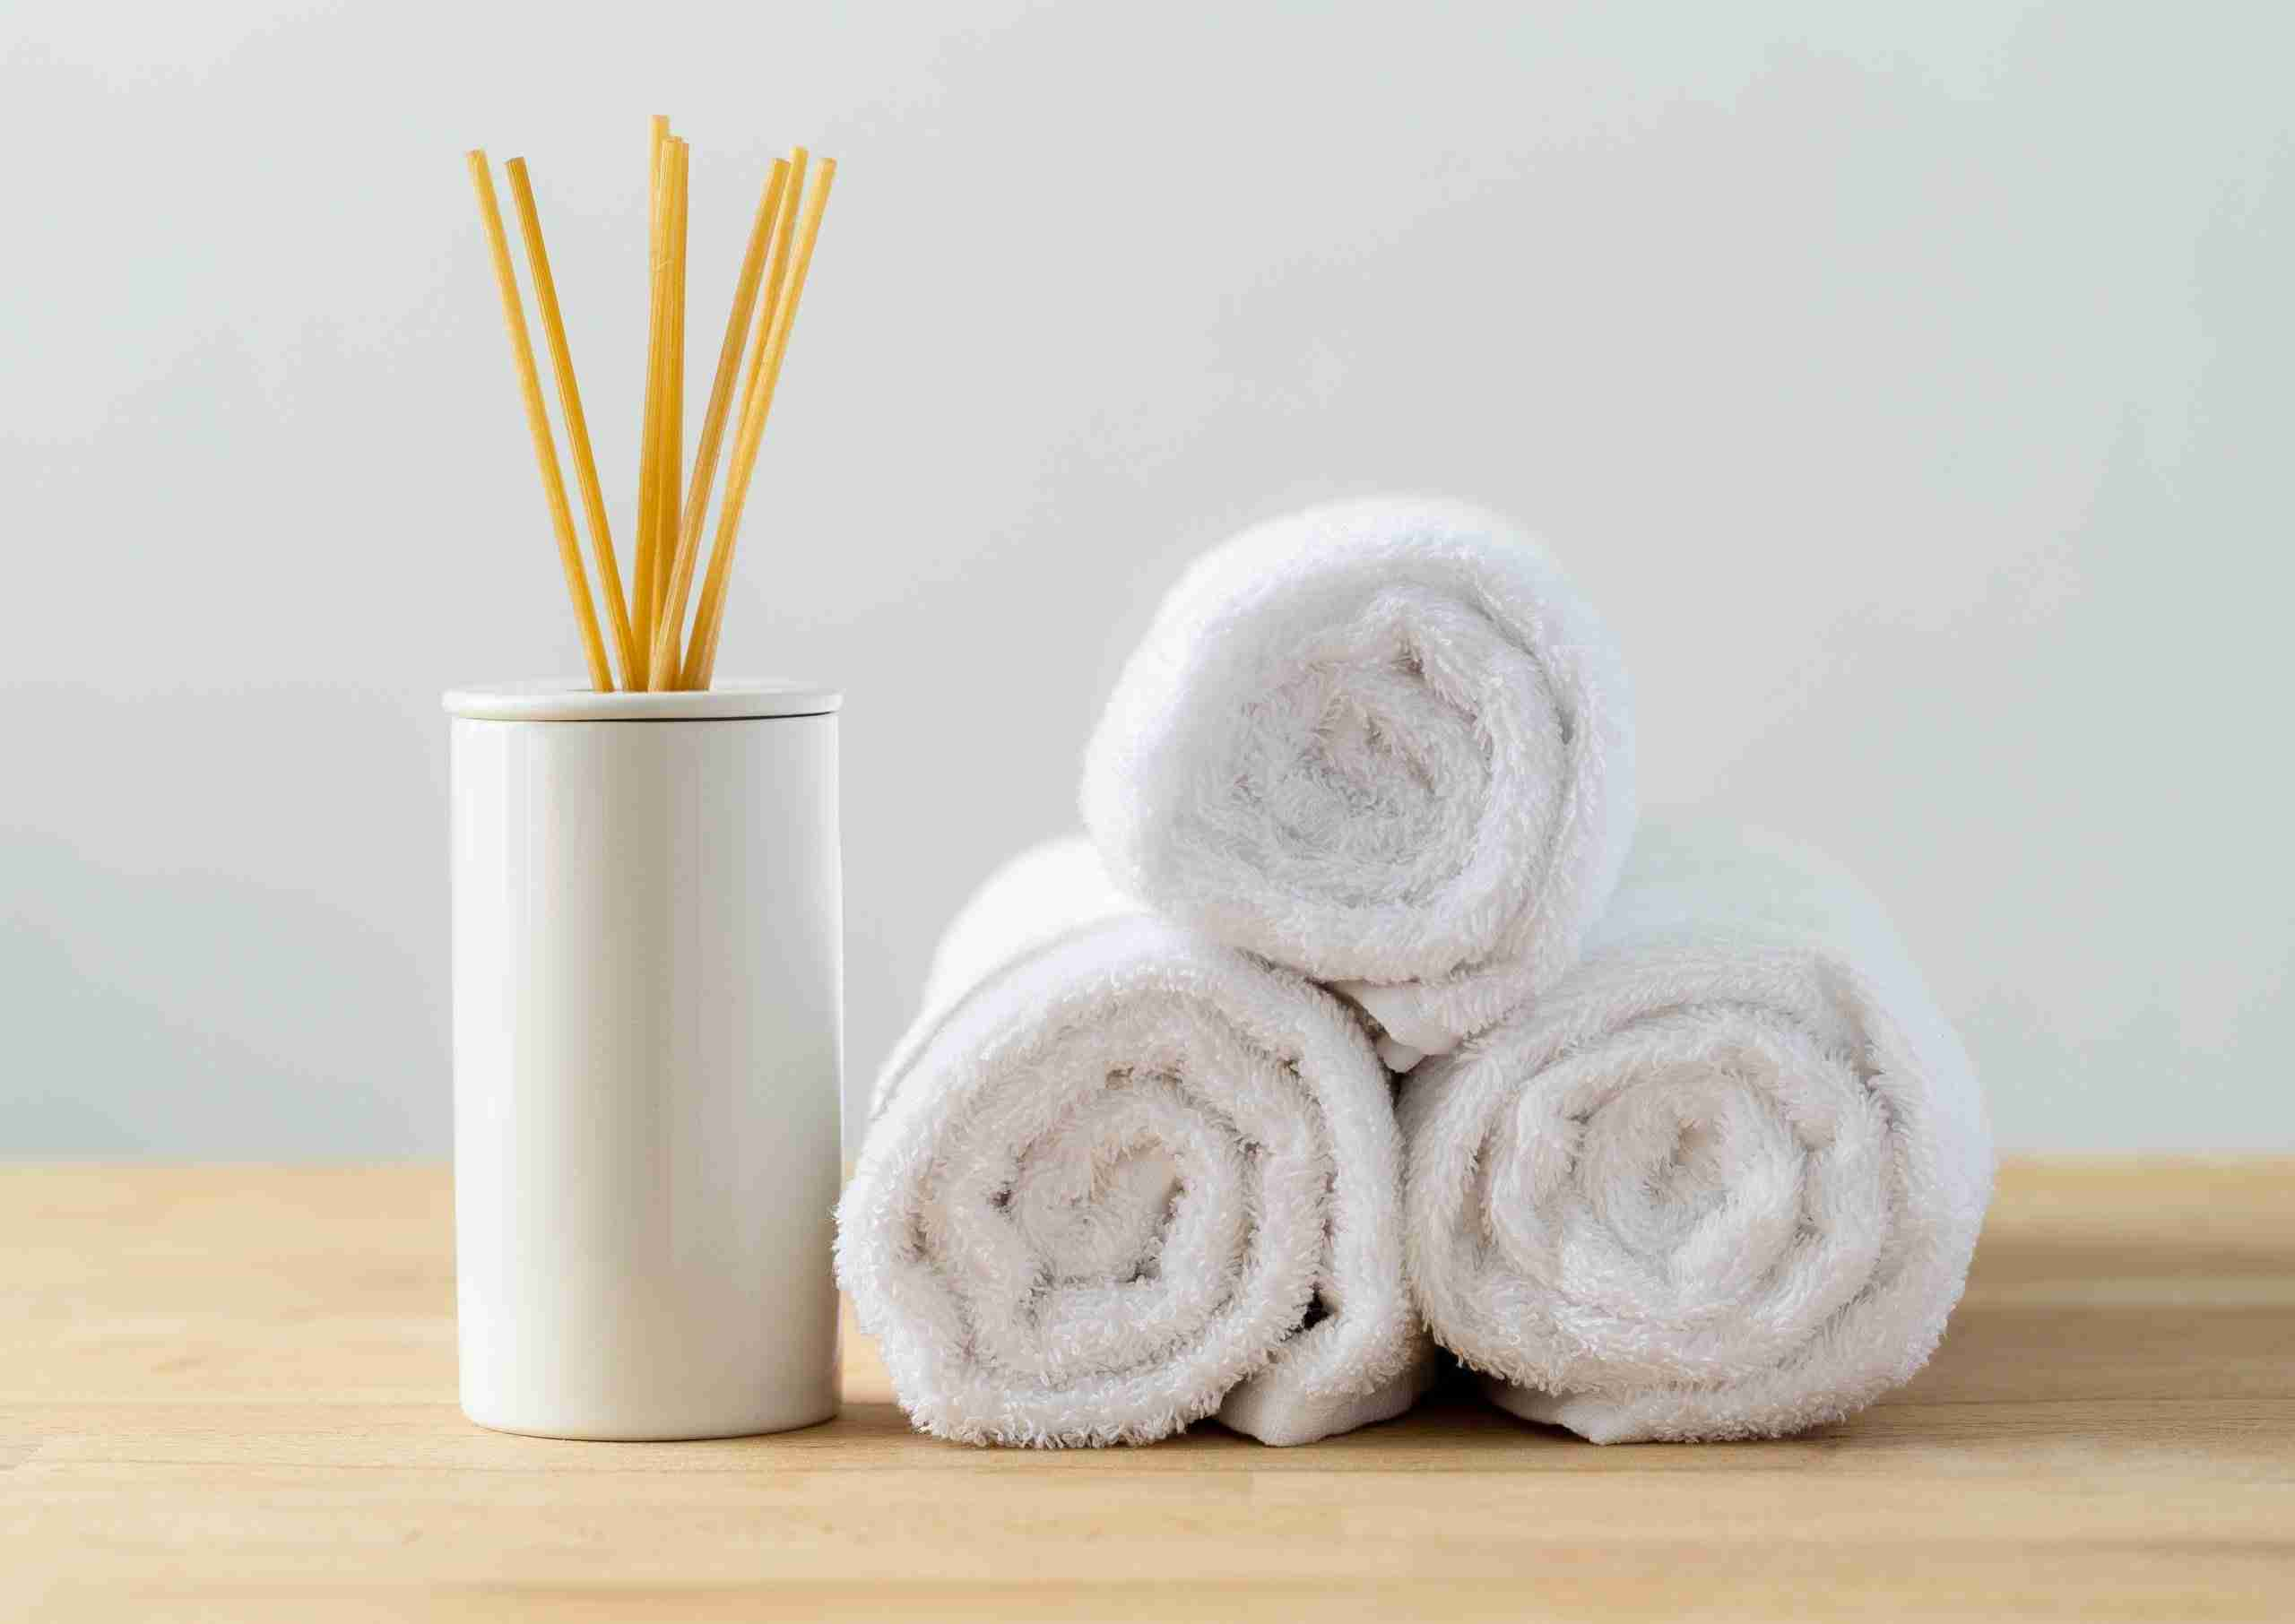 White towels and scented woods